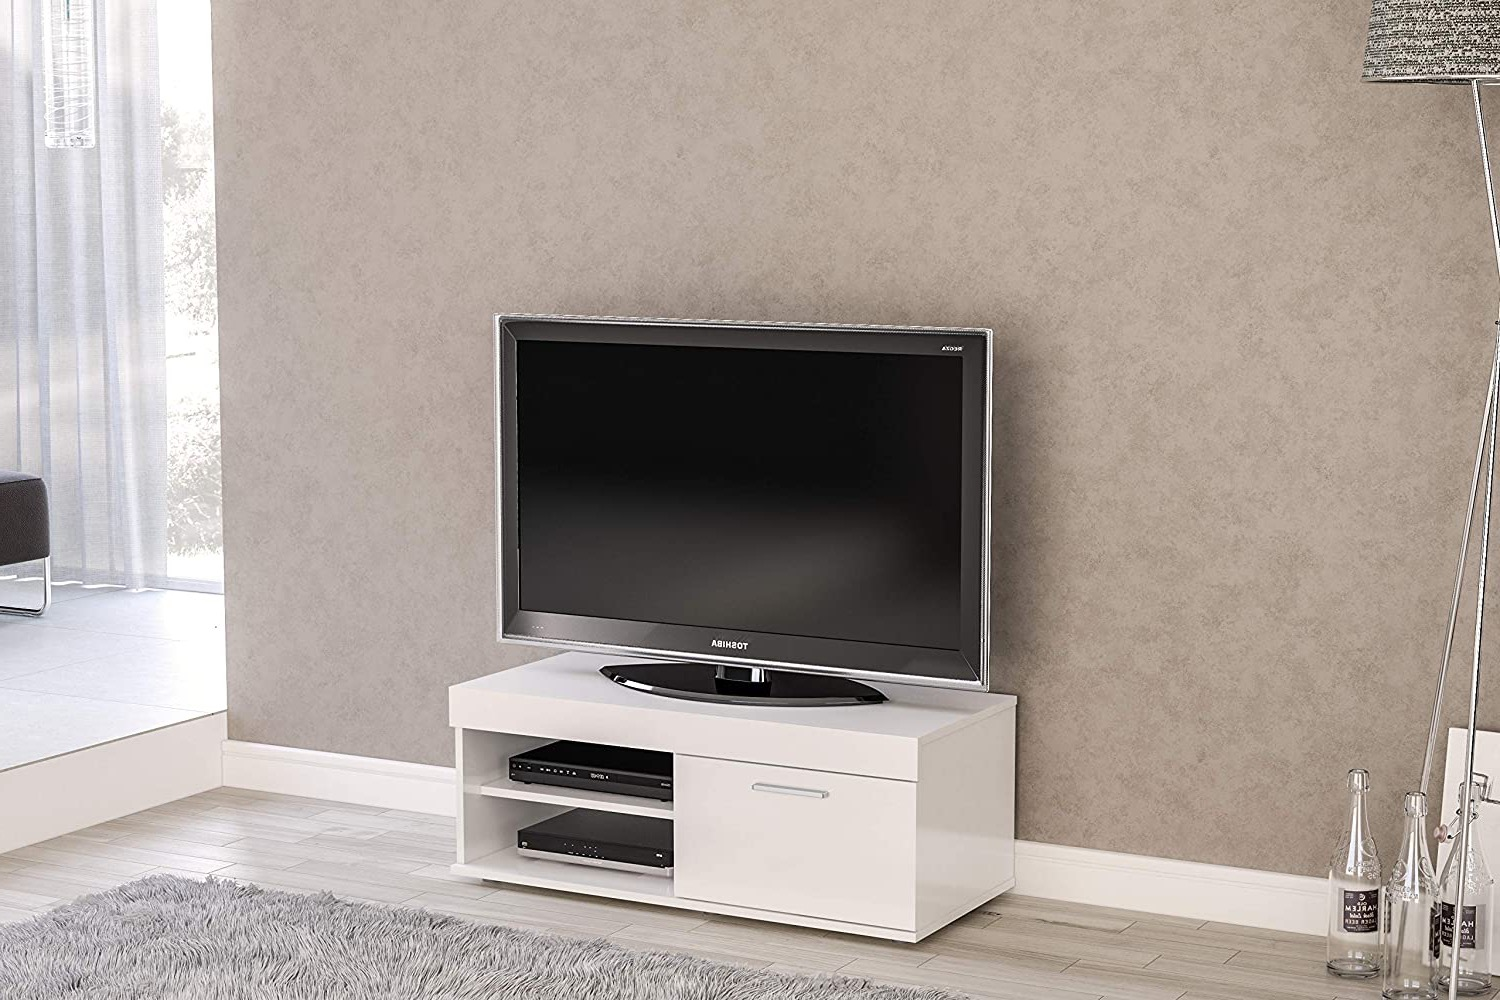 Edgeware Small Tv Stands (View 2 of 6)